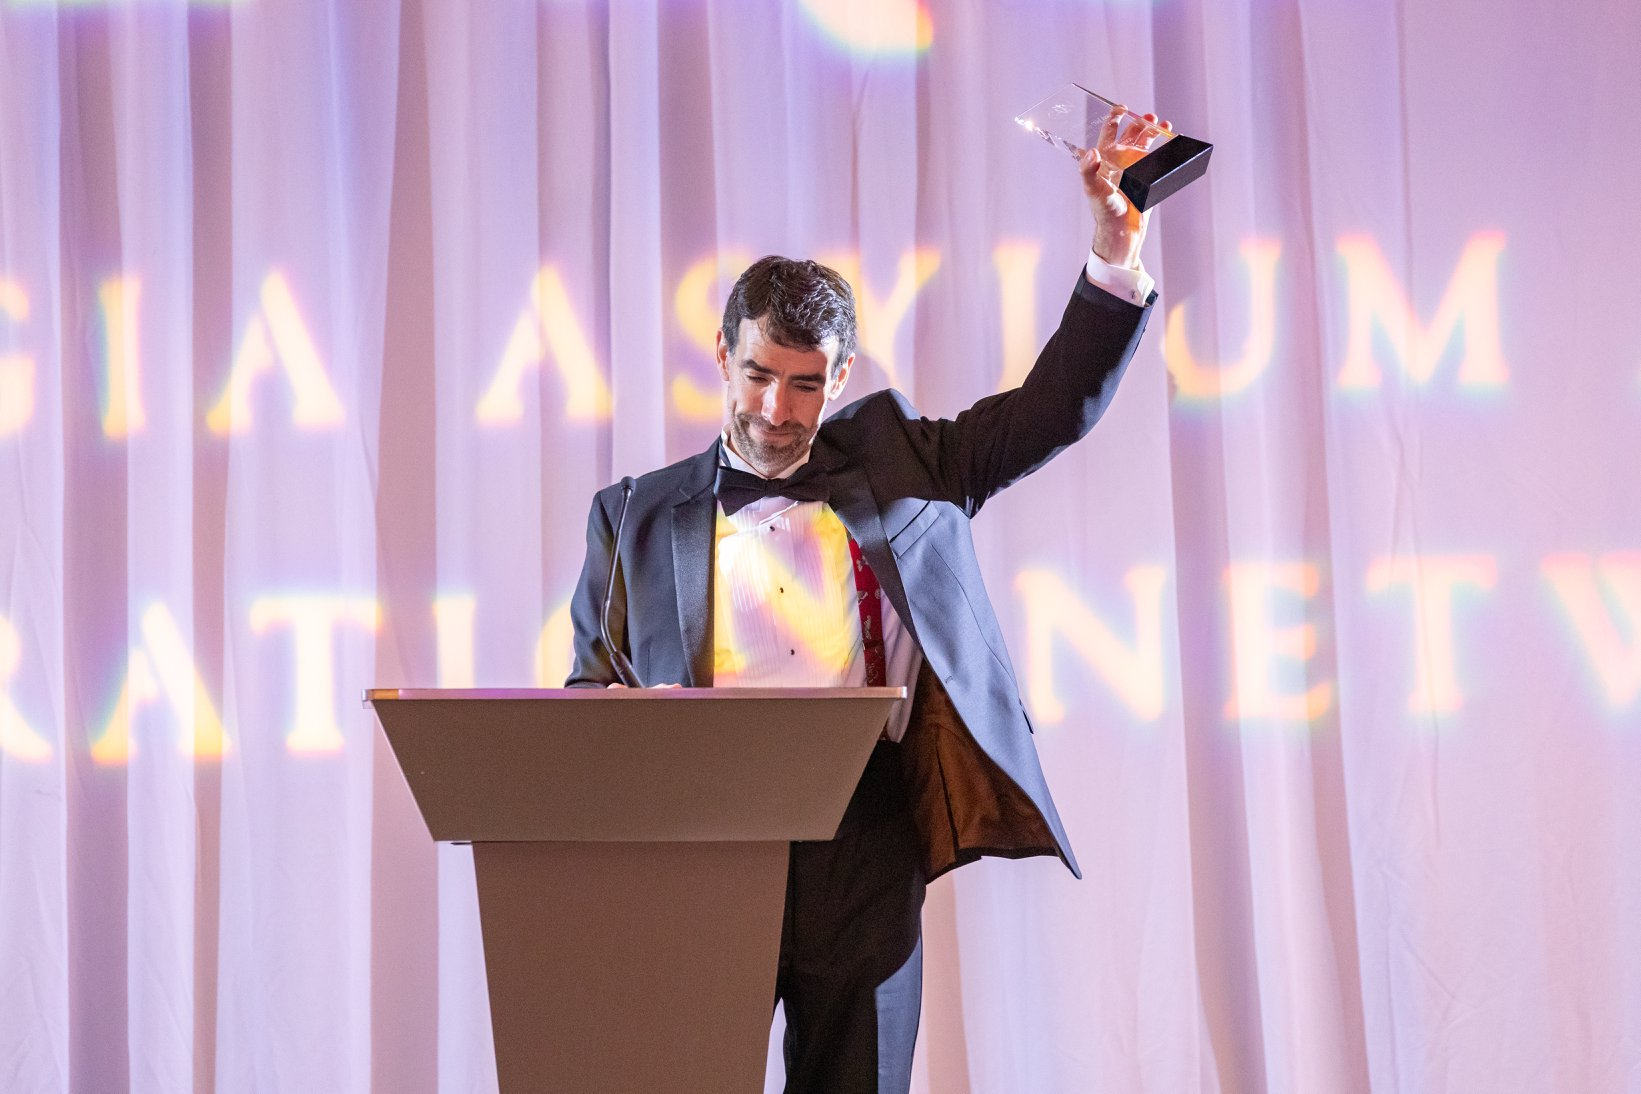 A GAIN honoree stands behind a podium, lifting his award in the air.